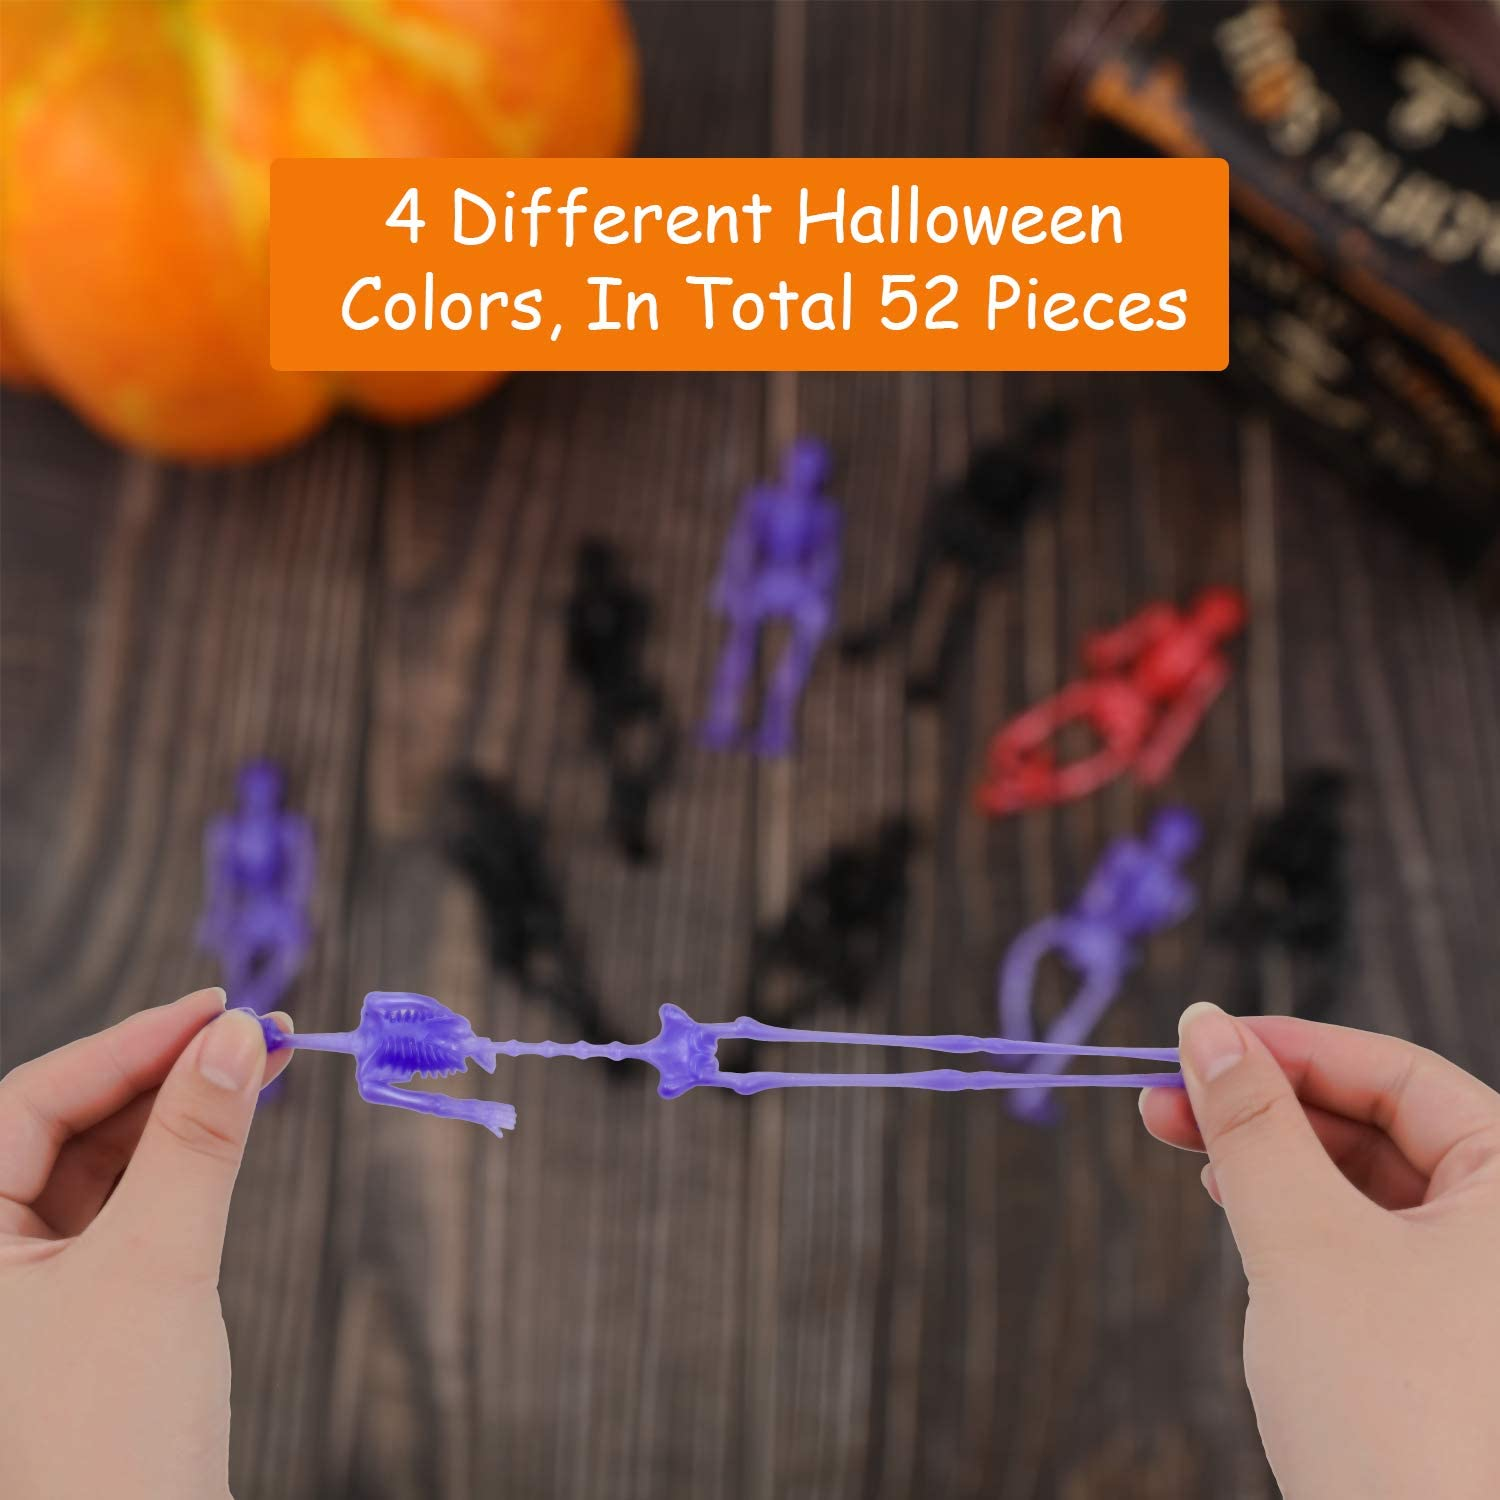 Pinata Filler Goodie Bags 52 Pieces Stretchy Toys Halloween Spring Skeleton Stretchy Toys Kit for Halloween Trick or Treat Fillings Small Toys Classroom Prizes Halloween Supplies